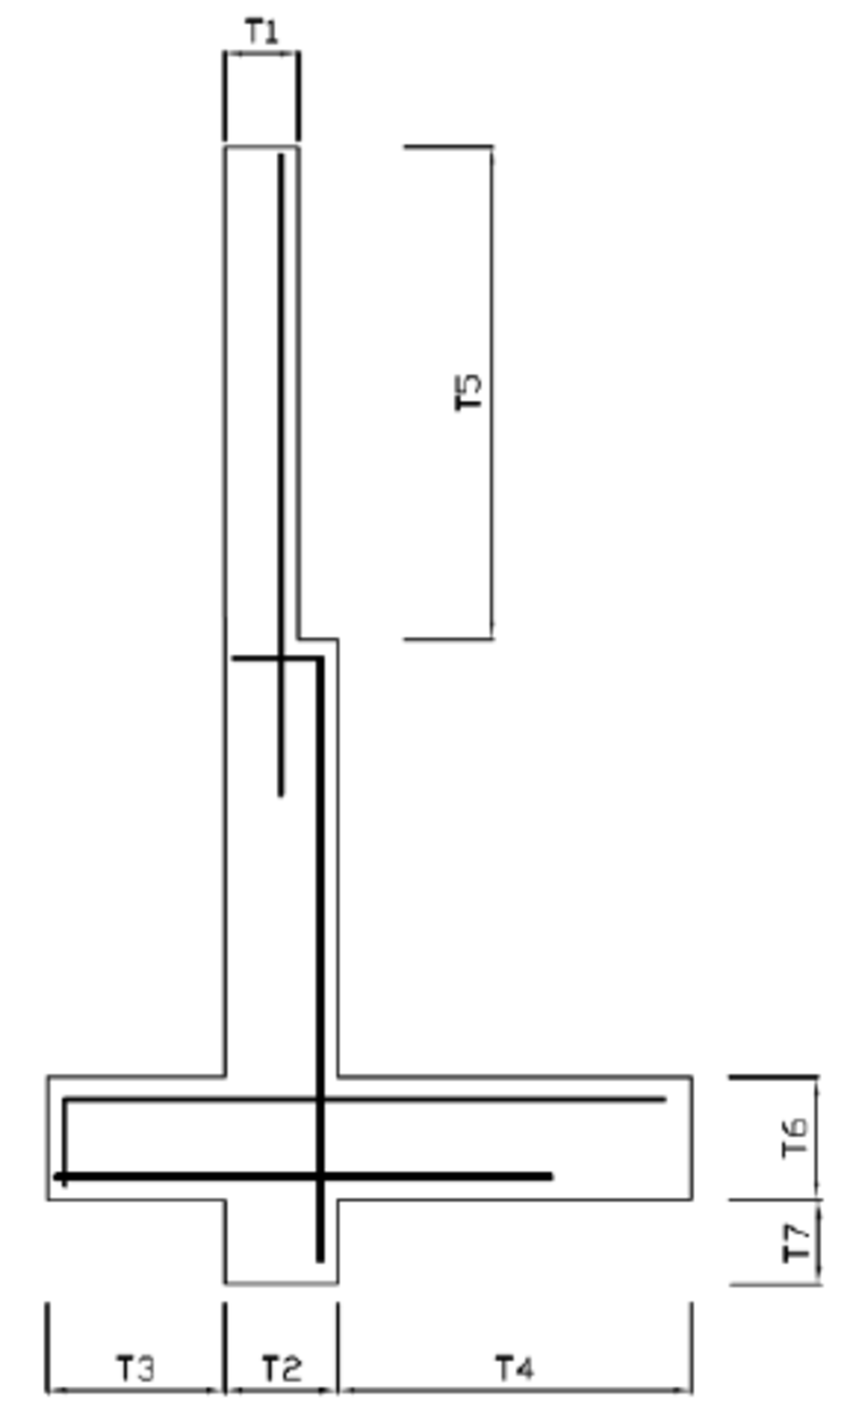 medium resolution of schematic view of the concrete retaining wall